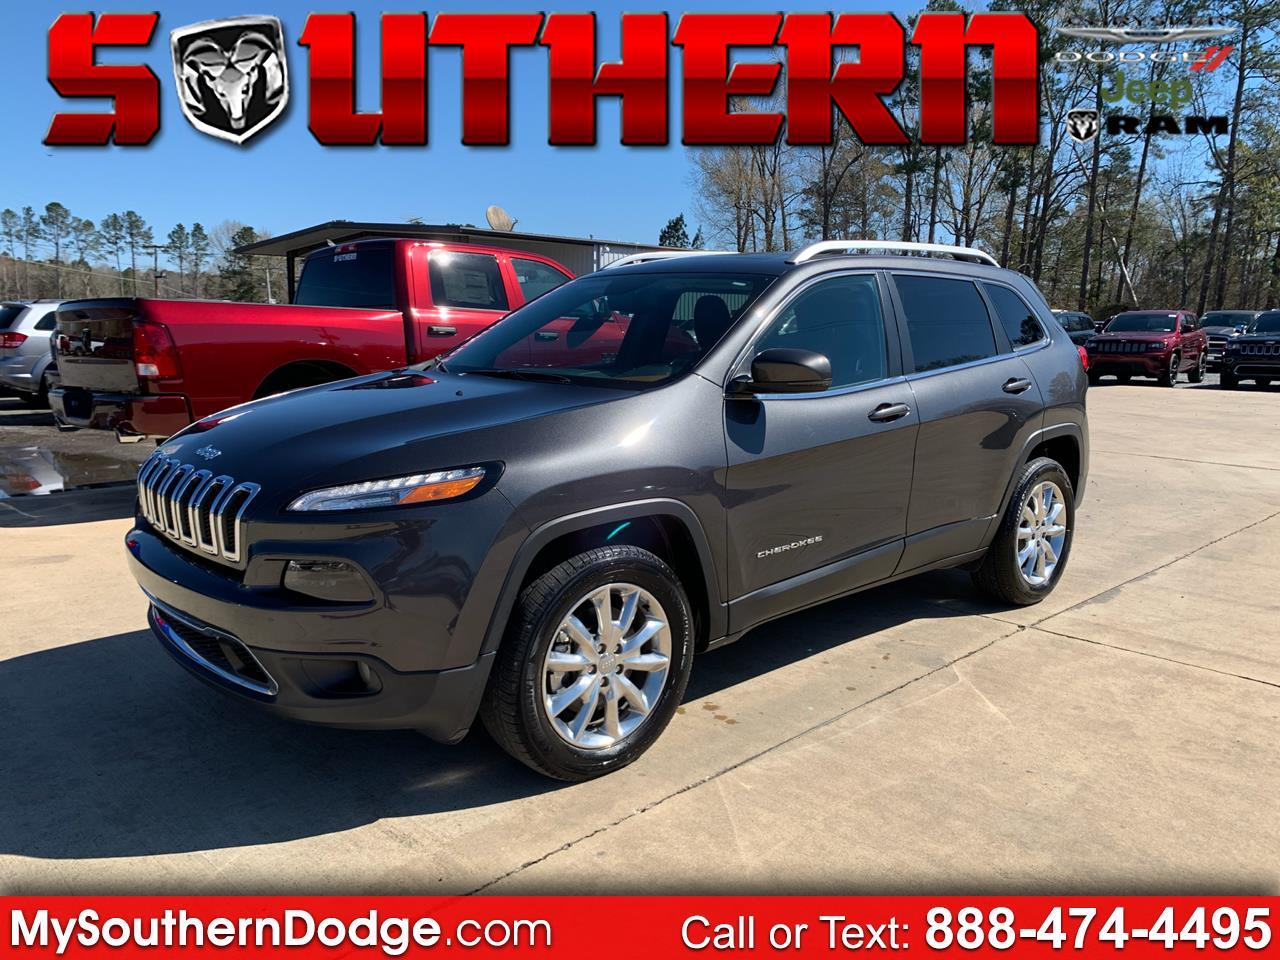 2016 Jeep Cherokee 4dr Limited 4WD